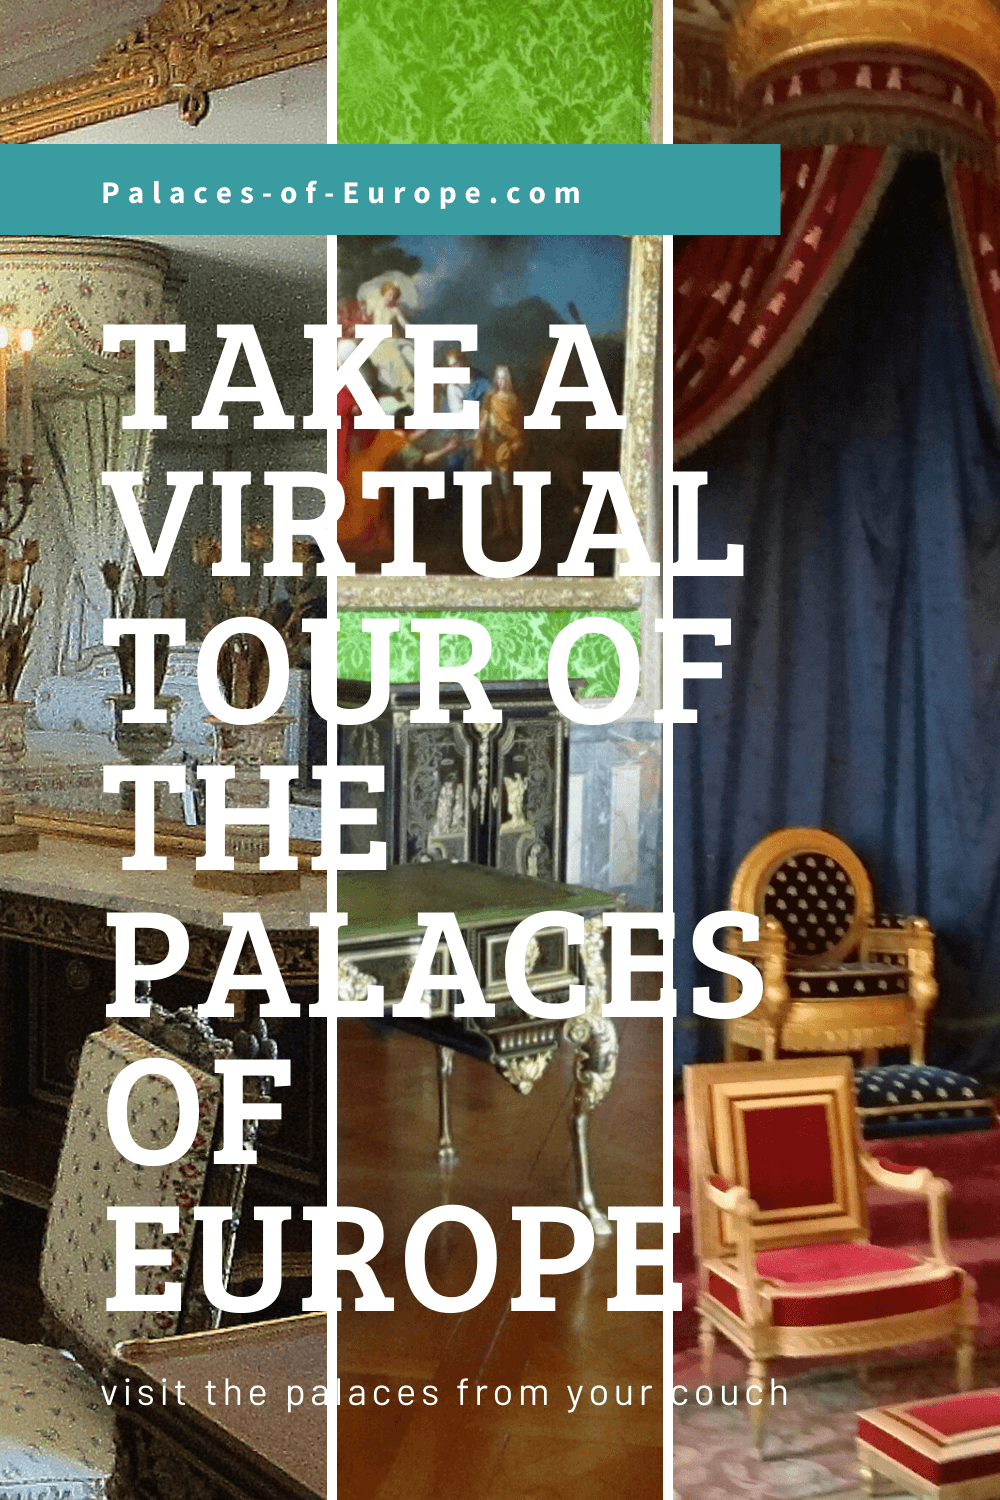 Visit these palaces of Europe with a virtual tour, comfy from your couch!